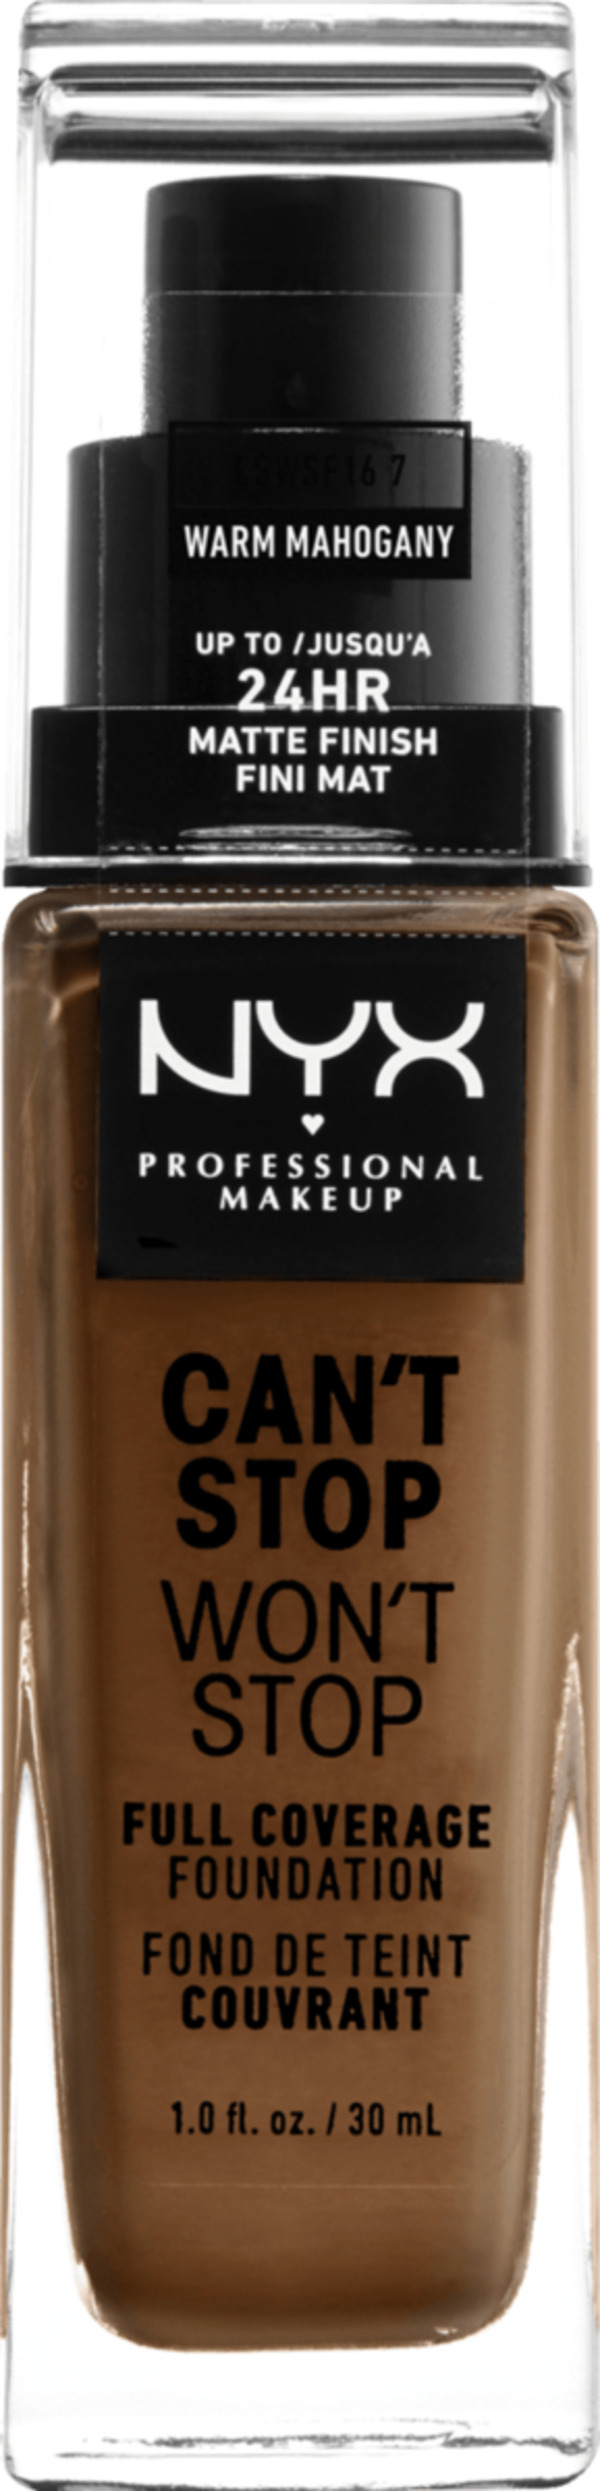 NYX PROFESSIONAL MAKEUP Make-up Can't Stop Won't Stop 24-Hour Foundation warm mahogany 16.7